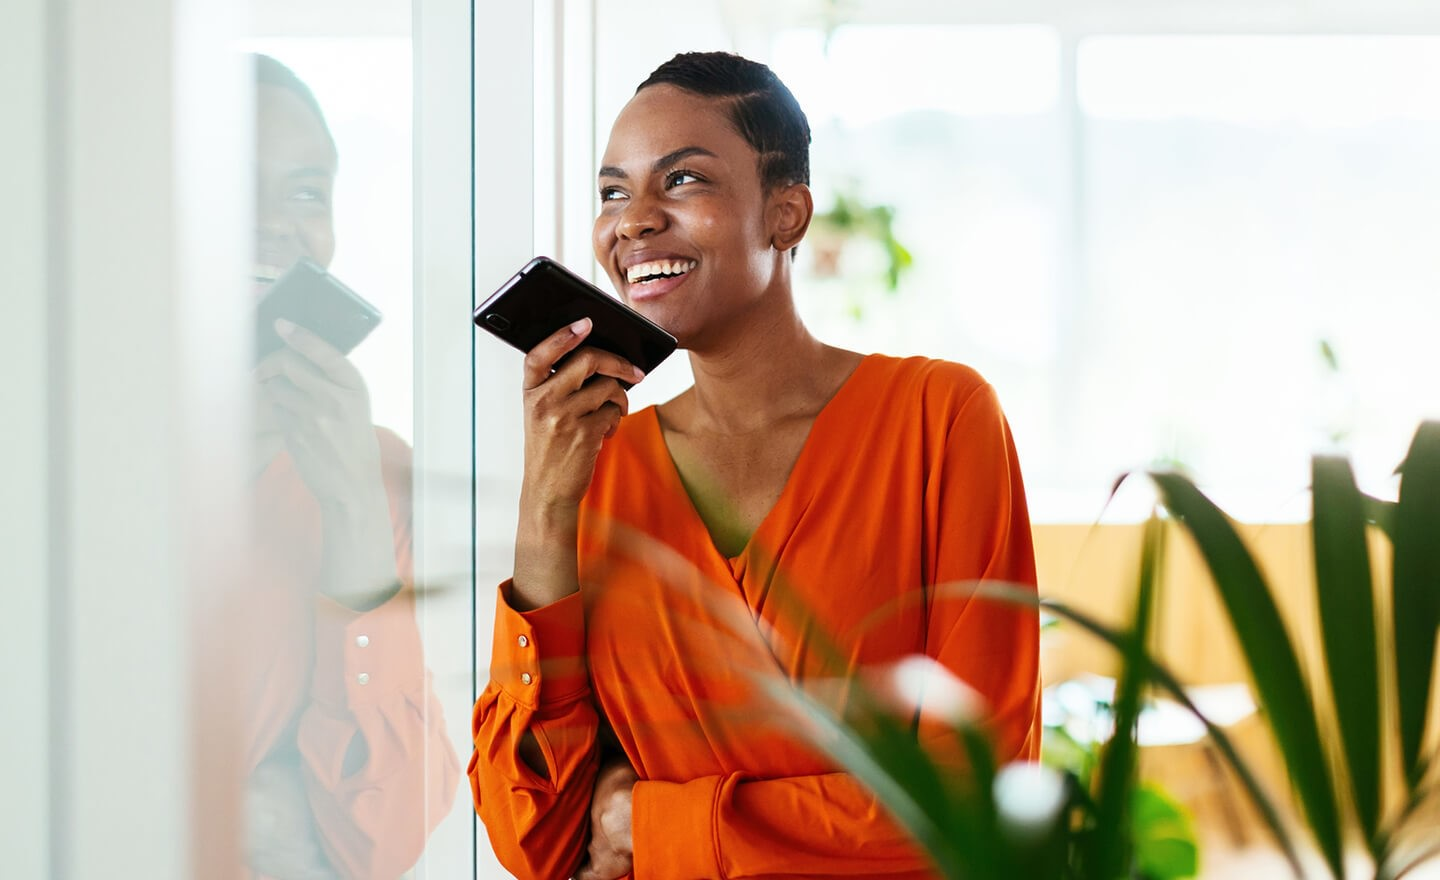 Woman doing phone interview in office